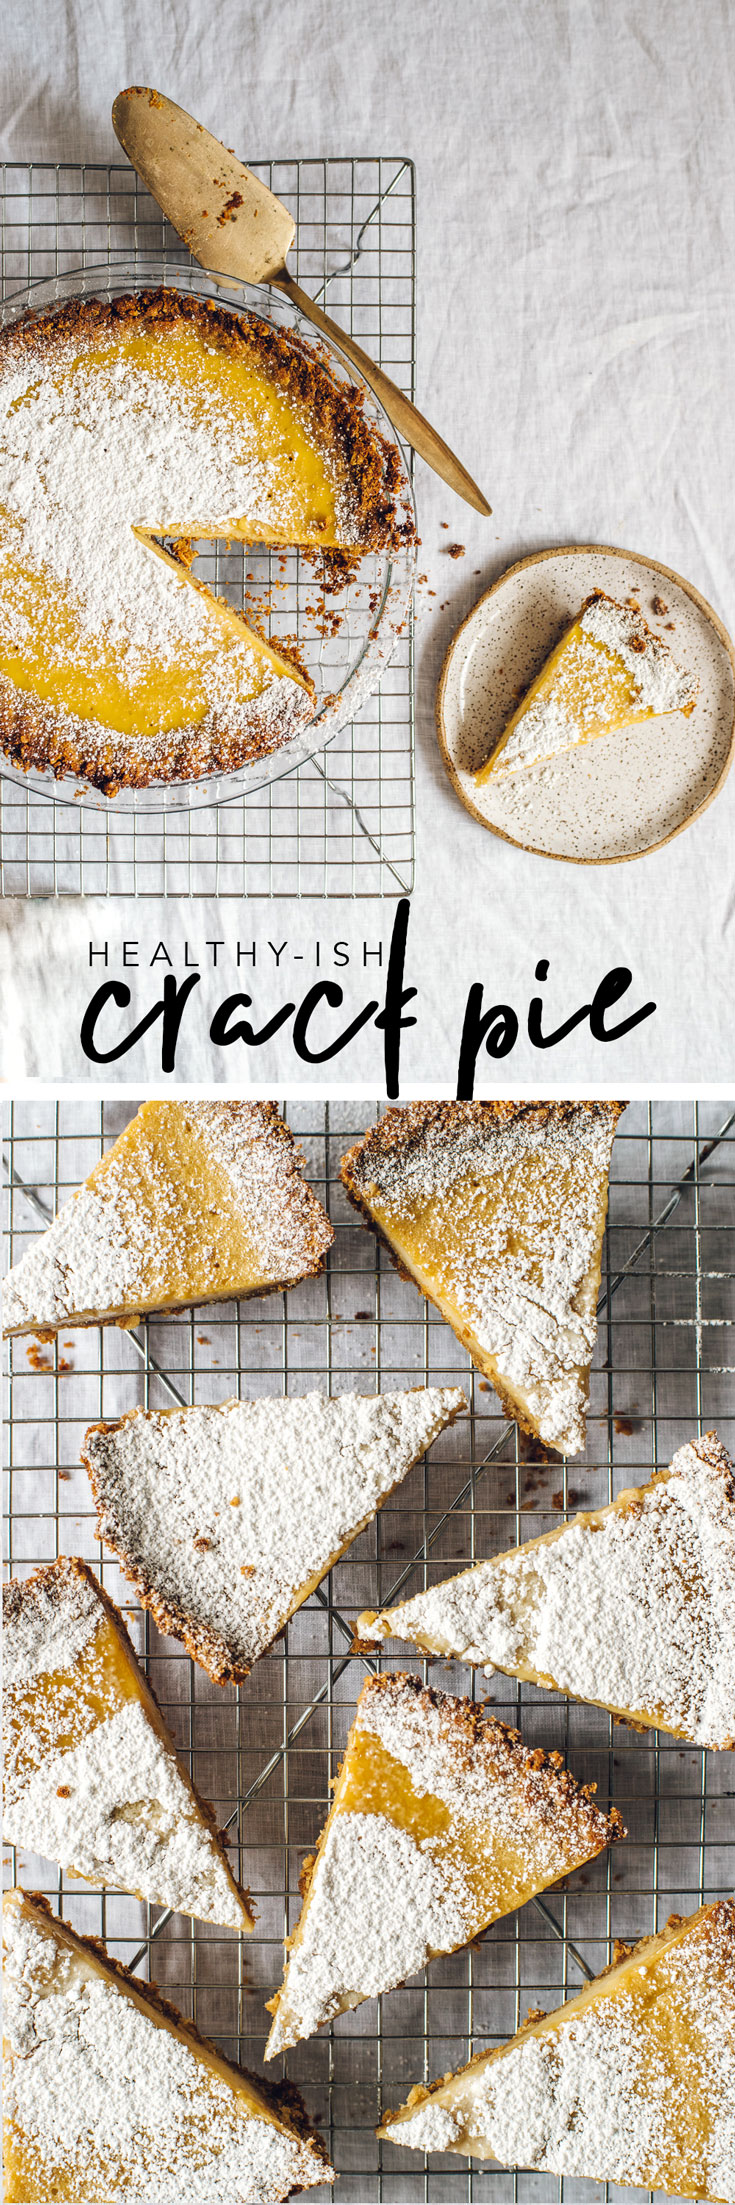 This Healthyish Crack Pie is a naturally sweetened version of the Milk Bar classic, with a oat-corn flour crust and a non-dairy buttermilk custard filling! #crackpie #pie #holiday #recipes #cornflour #healthyish | Brewing Happiness